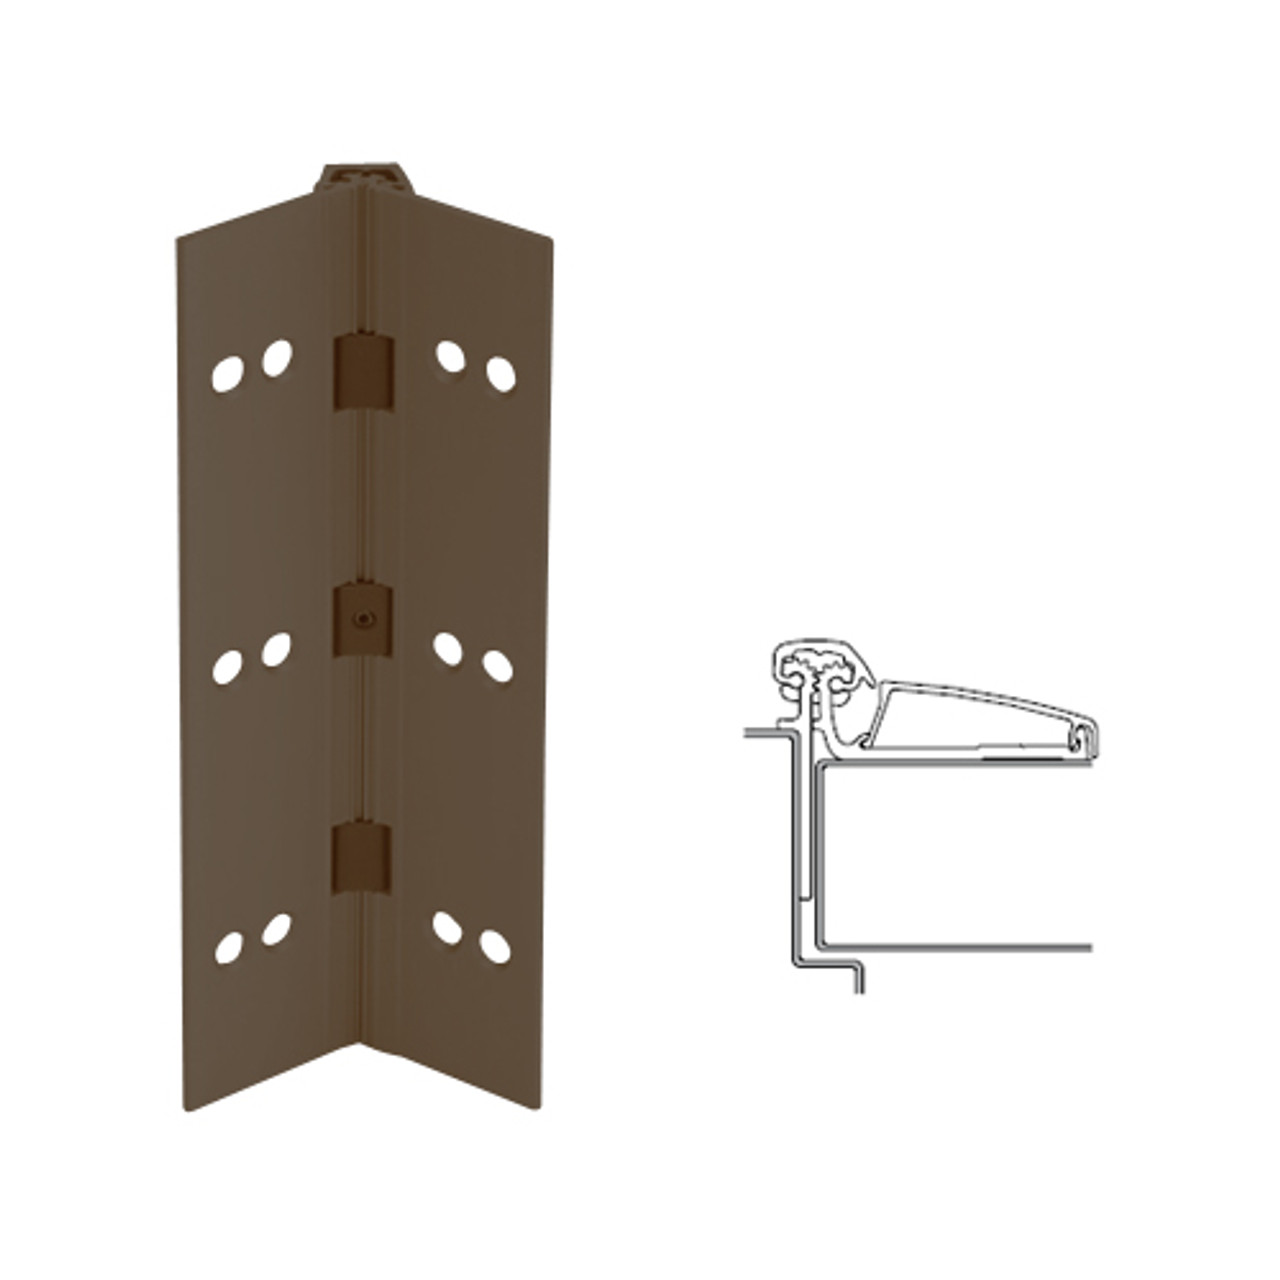 045XY-313AN-120 IVES Adjustable Half Surface Continuous Geared Hinges in Dark Bronze Anodized